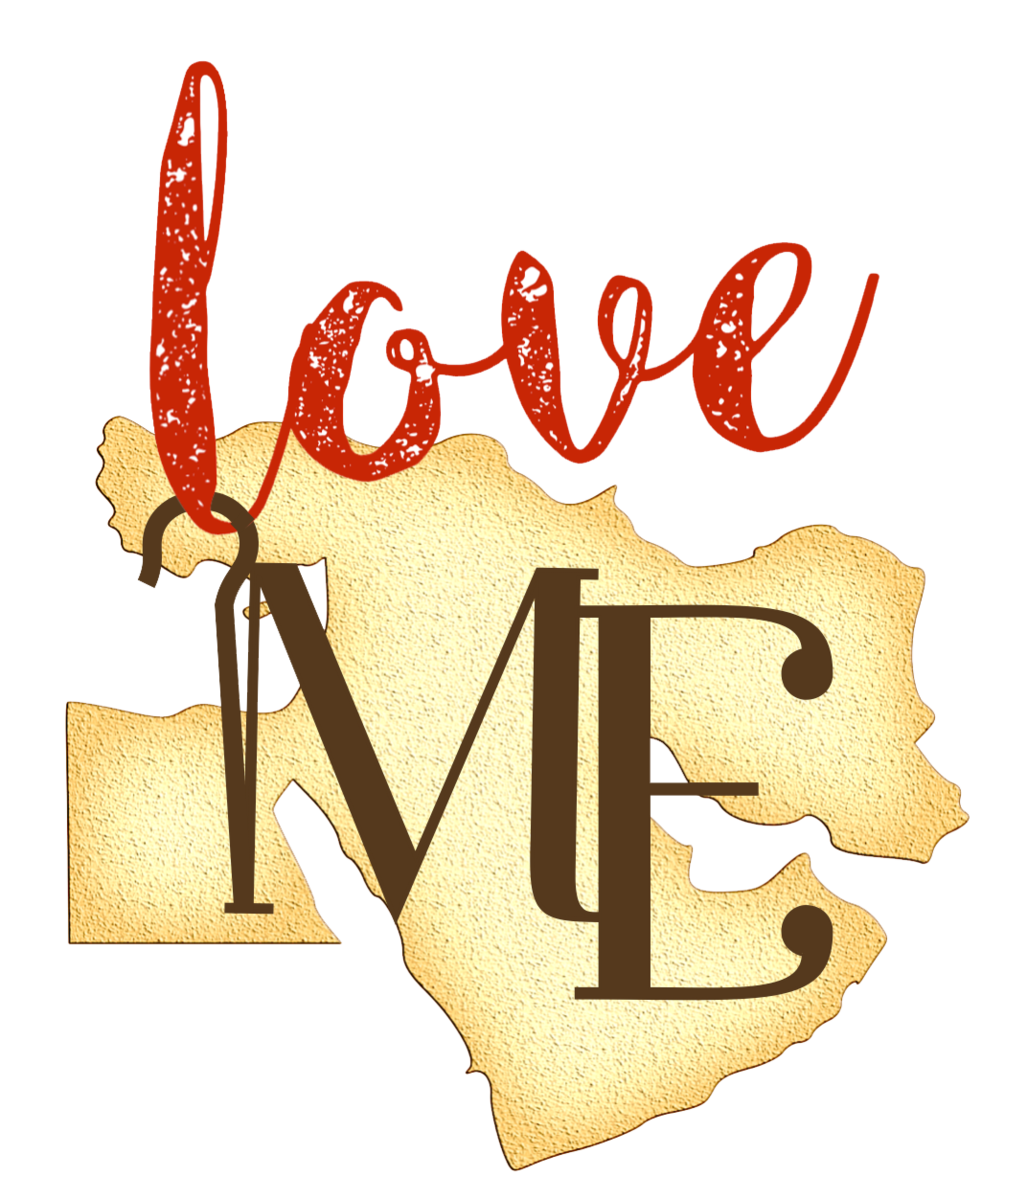 Loveme scarves global . Gift clipart value proposition